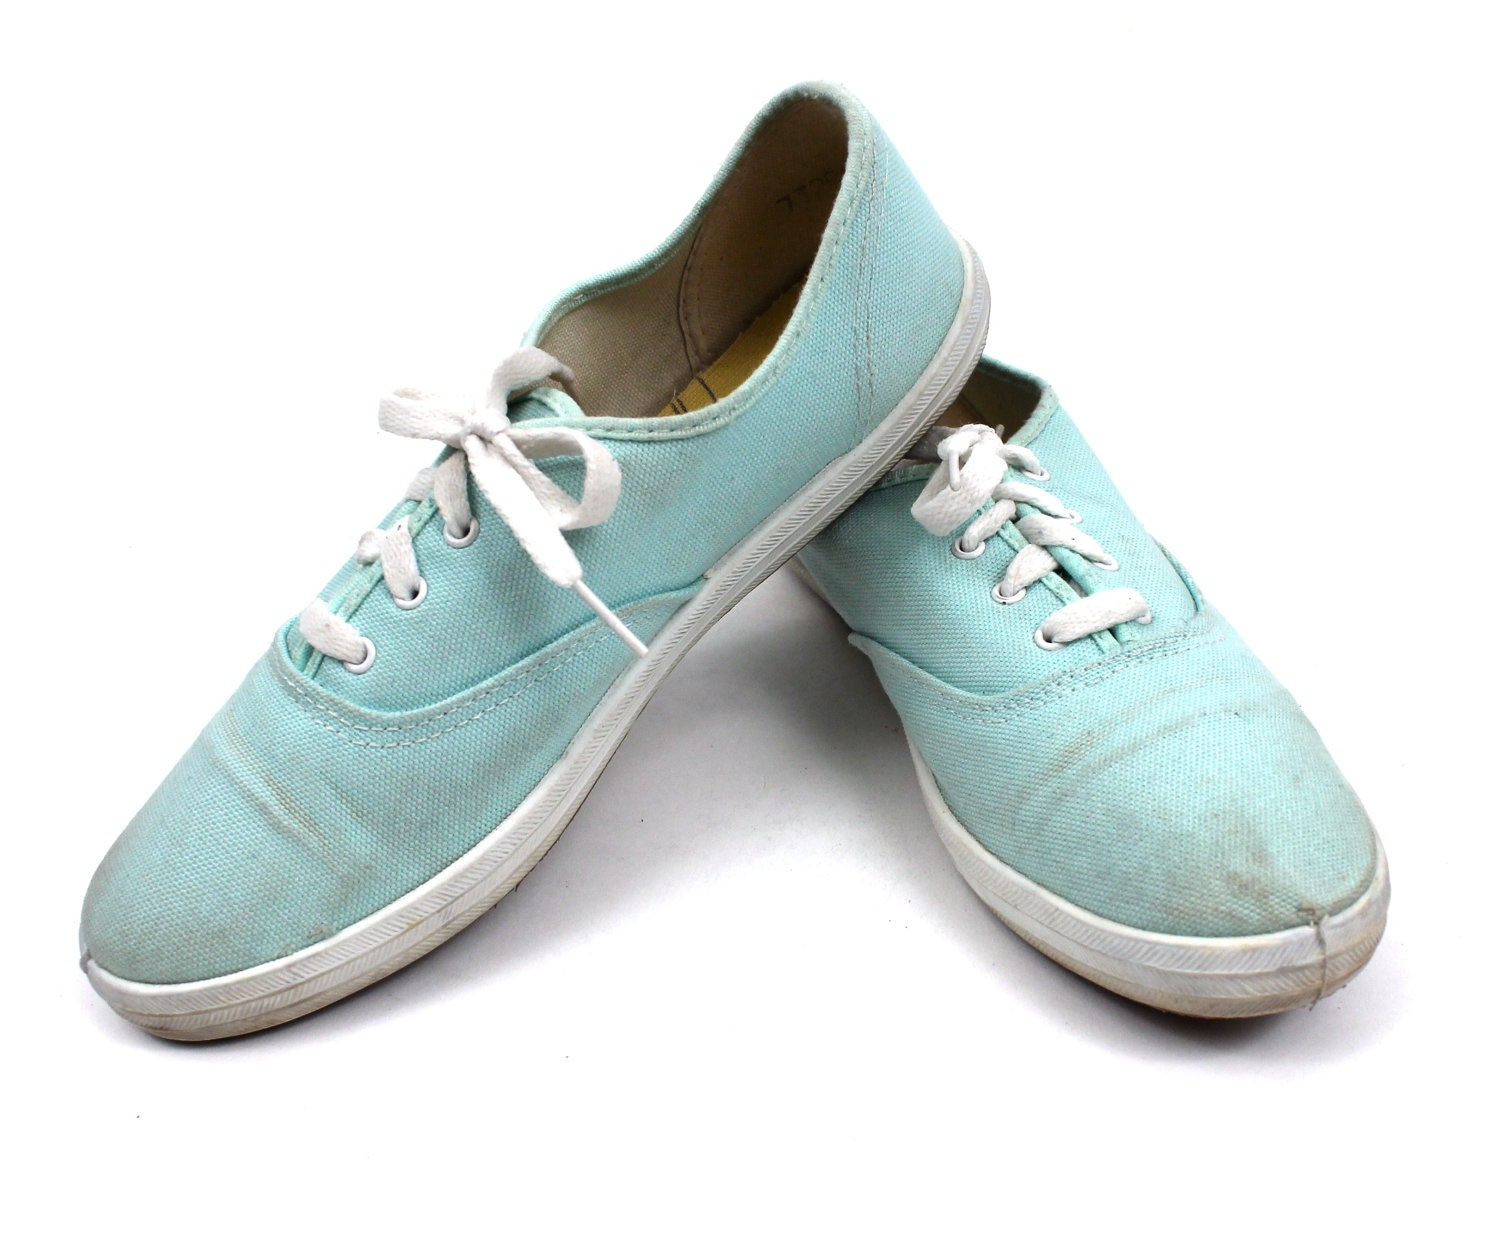 1970s mint colored tennis shoes keds style casual womens